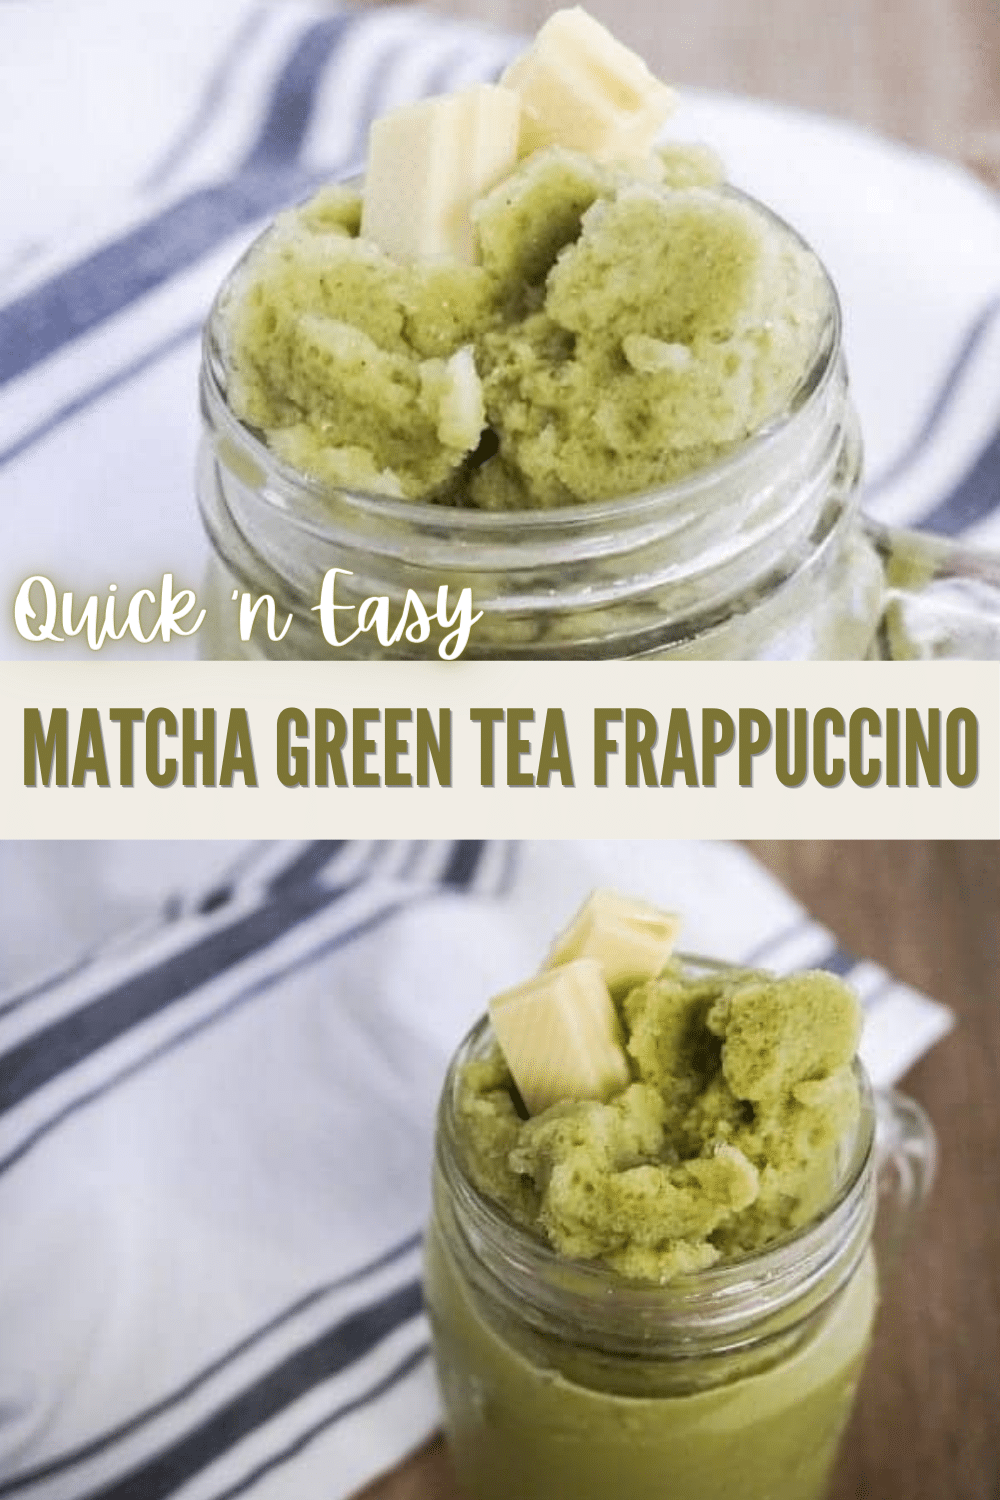 If you're a green tea lover, you should try this fool-proof classic matcha green tea frappuccino recipe. You can make it in just 5 minutes! #matchagreentea #frappuccino #recipe #greentea via @wondermomwannab